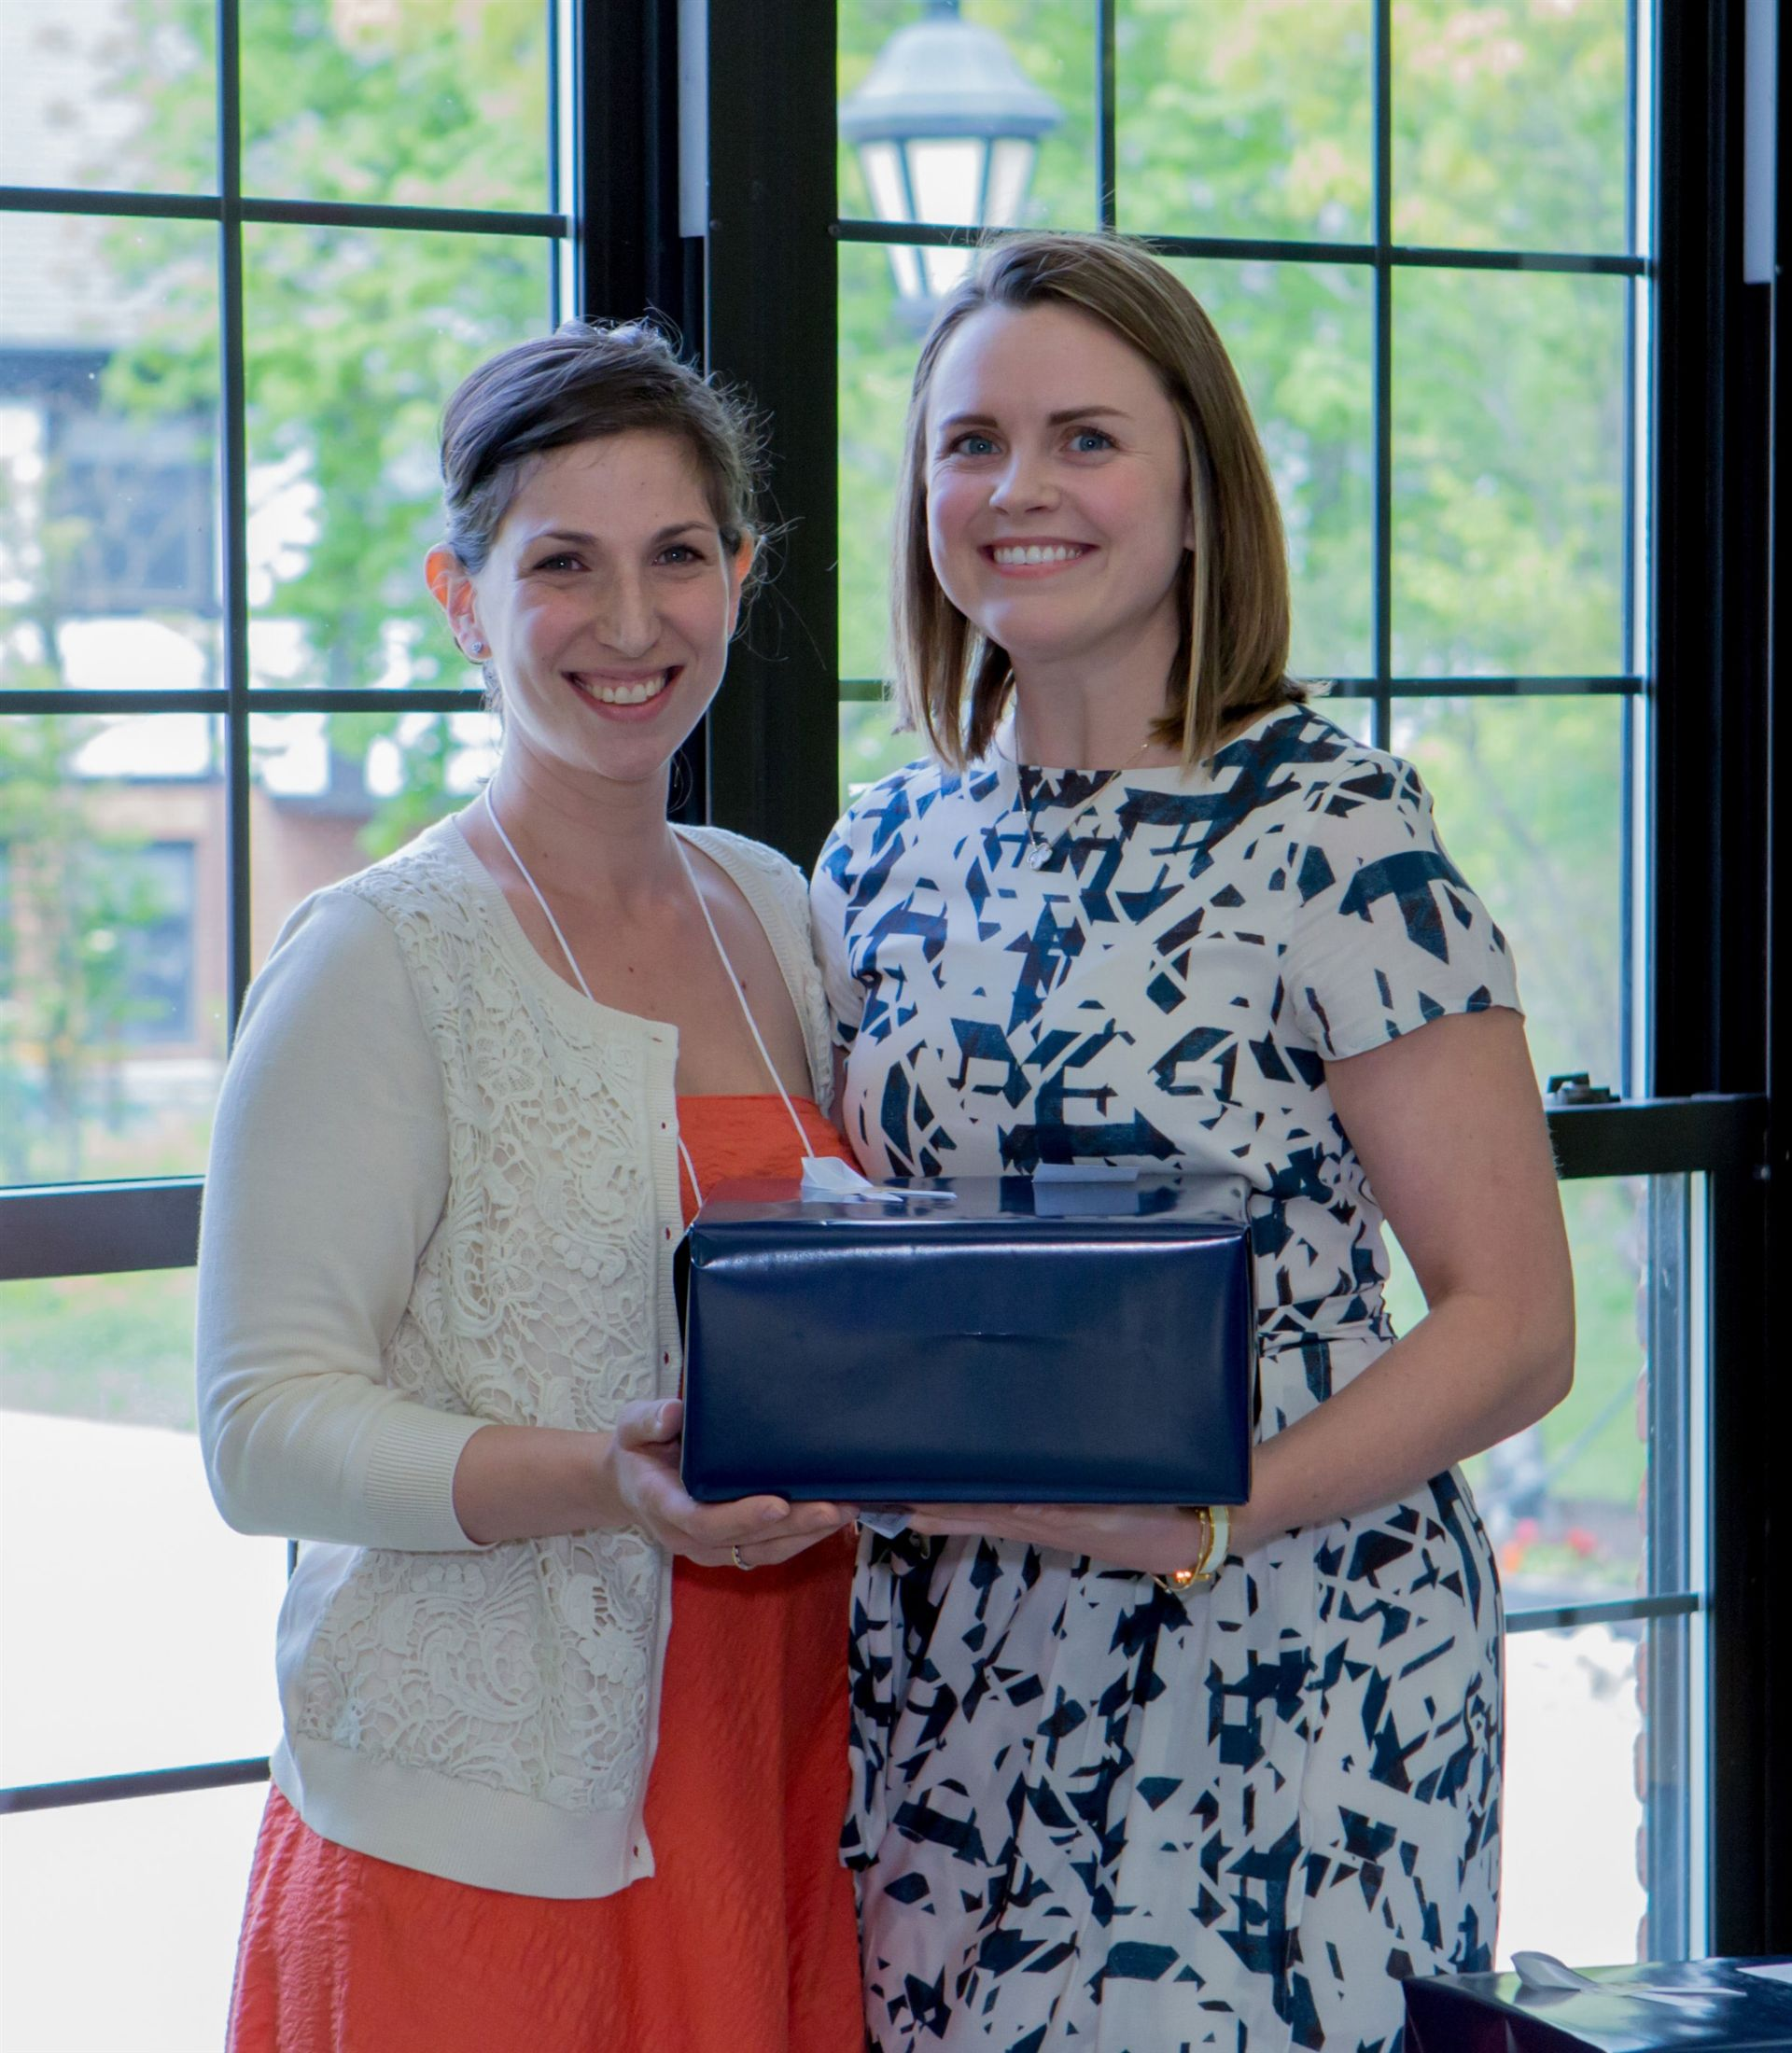 Lindsay A. (Mohr) Mader '03 P '30, President and Katherine E. (O'Donnell) Lynch '06, Vice President